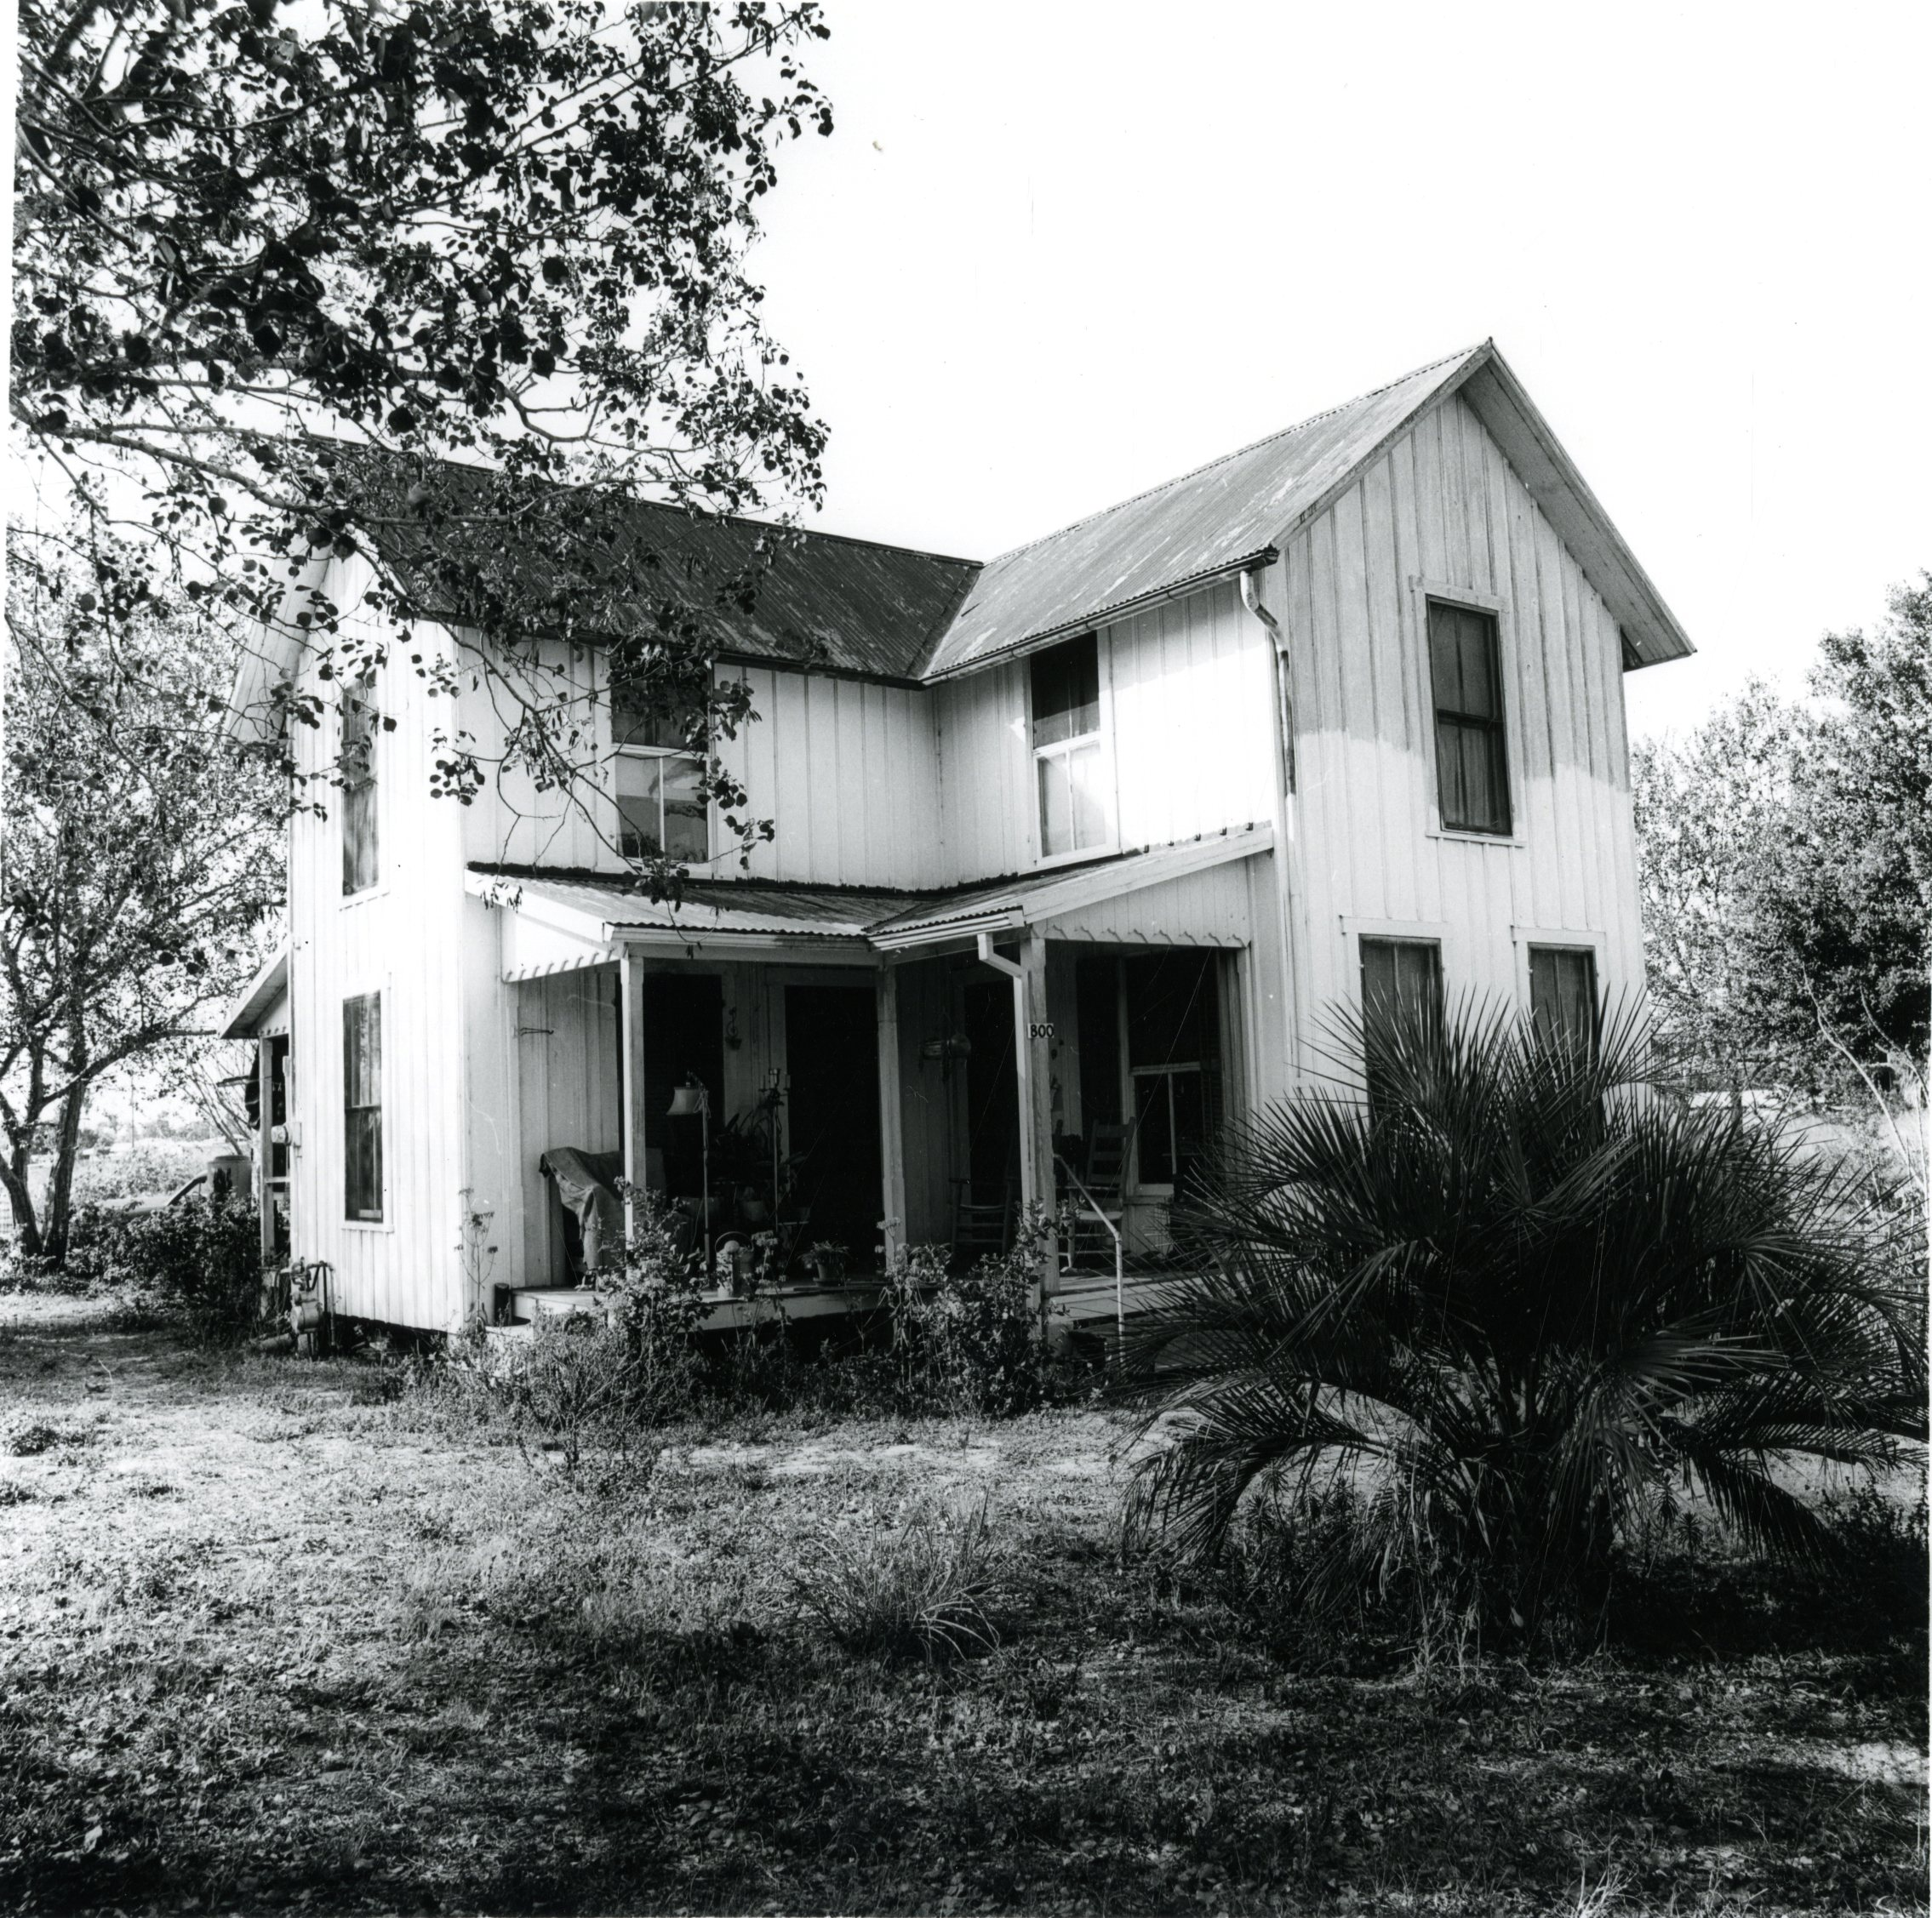 Lowe House on original site, Anona, Florida, circa 1930.